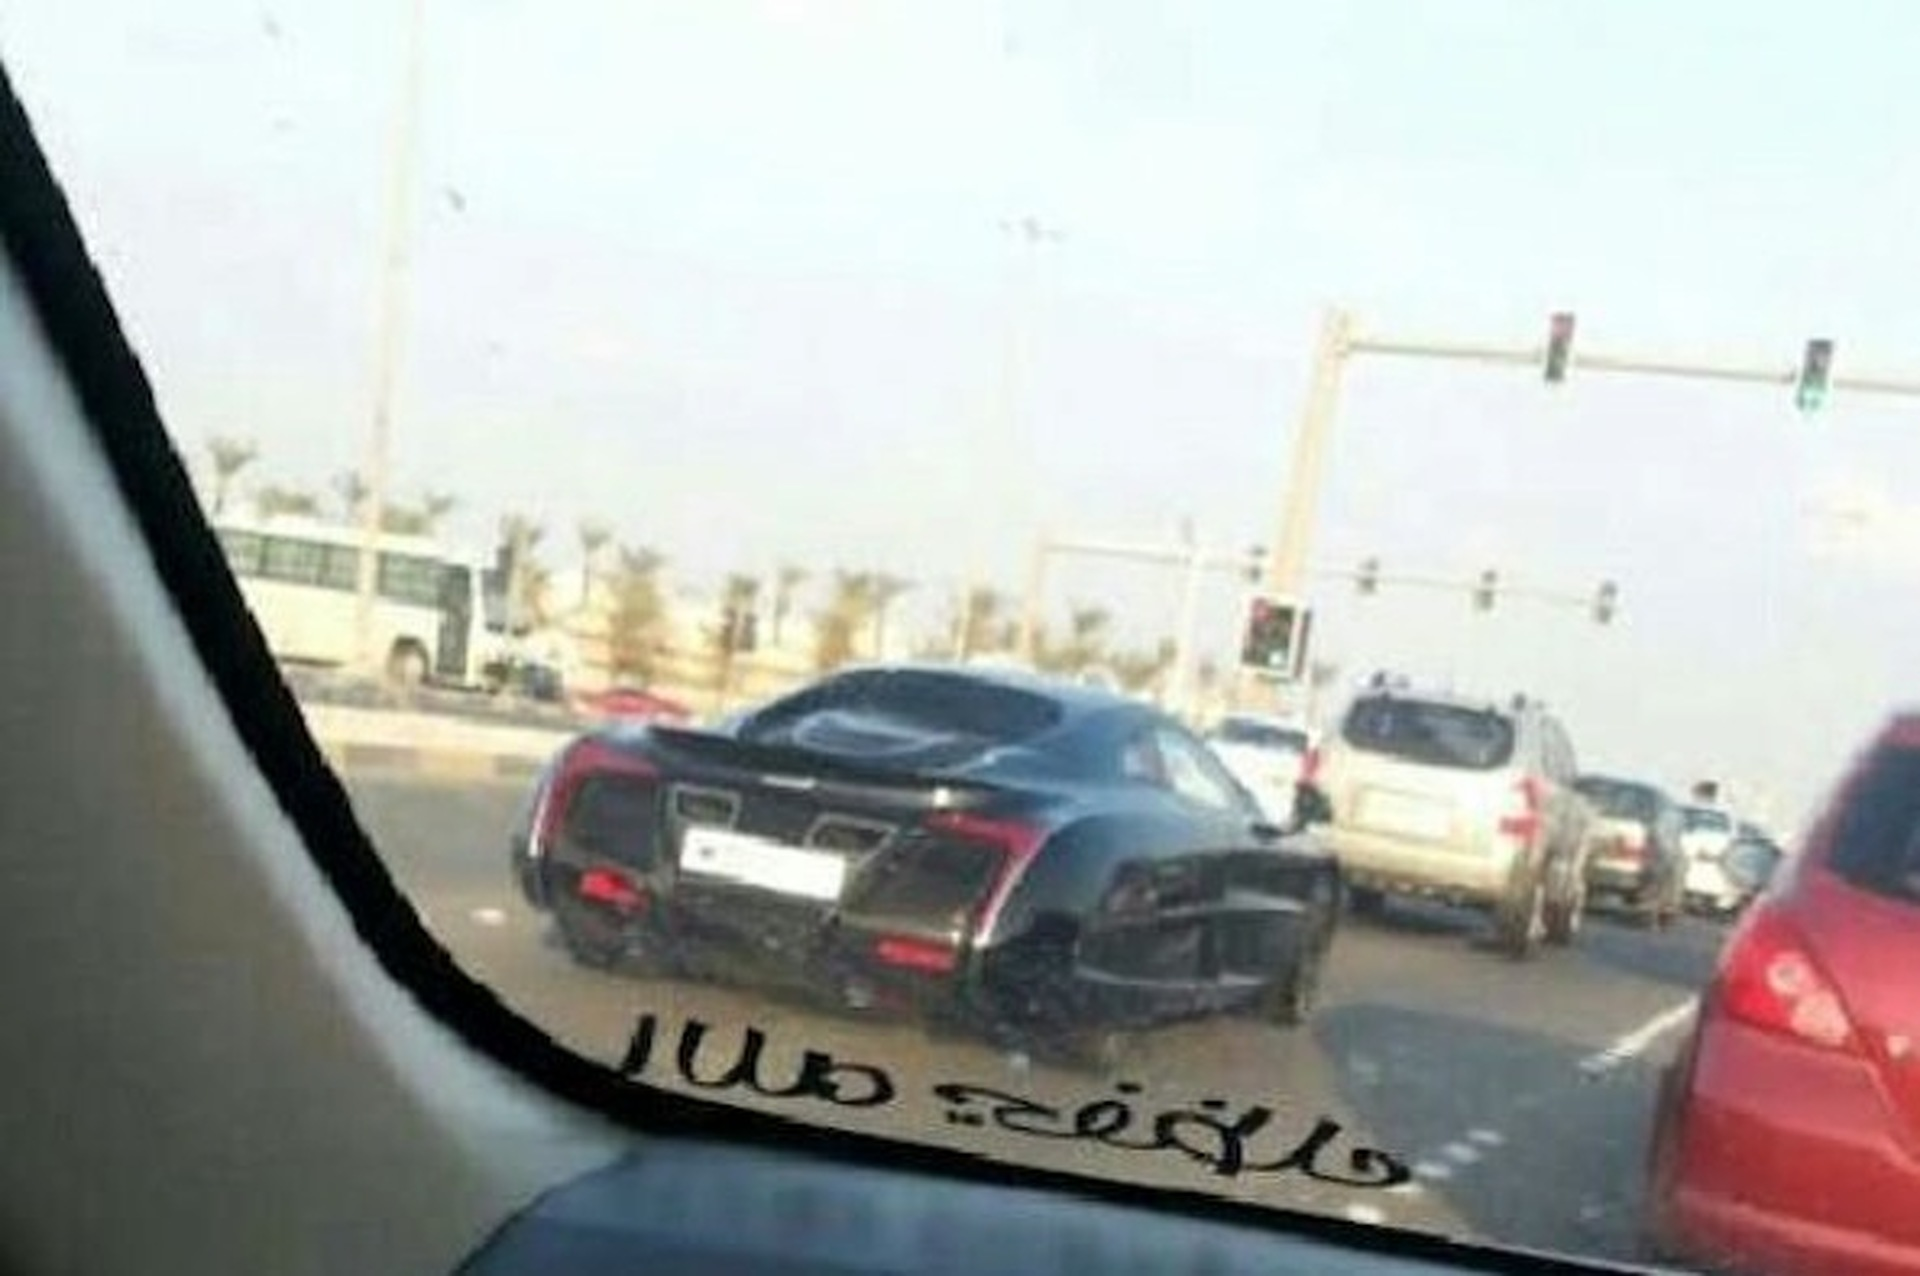 https://icdn-5.motor1.com/images/mgl/0YAMn/s1/spotted-mclaren-x-1-strolling-through-bahrain.jpg